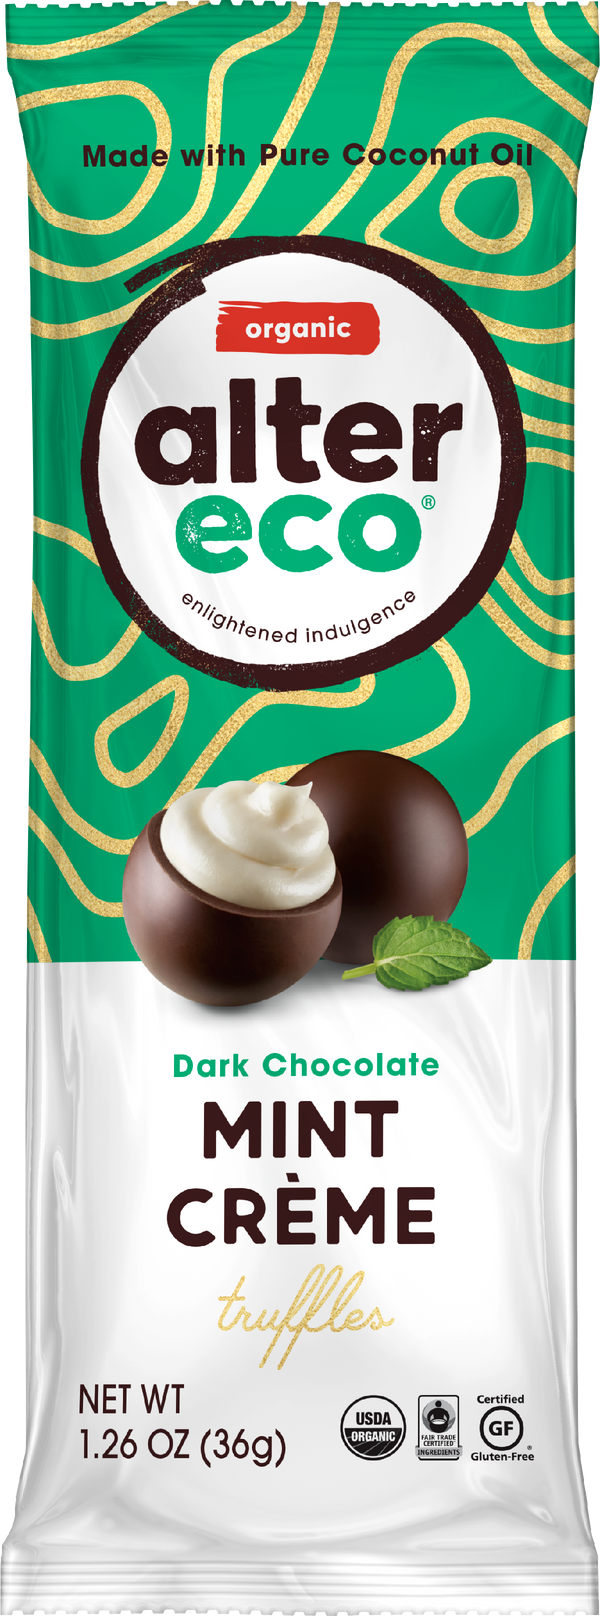 Mint Crème Truffles (3 count) Package